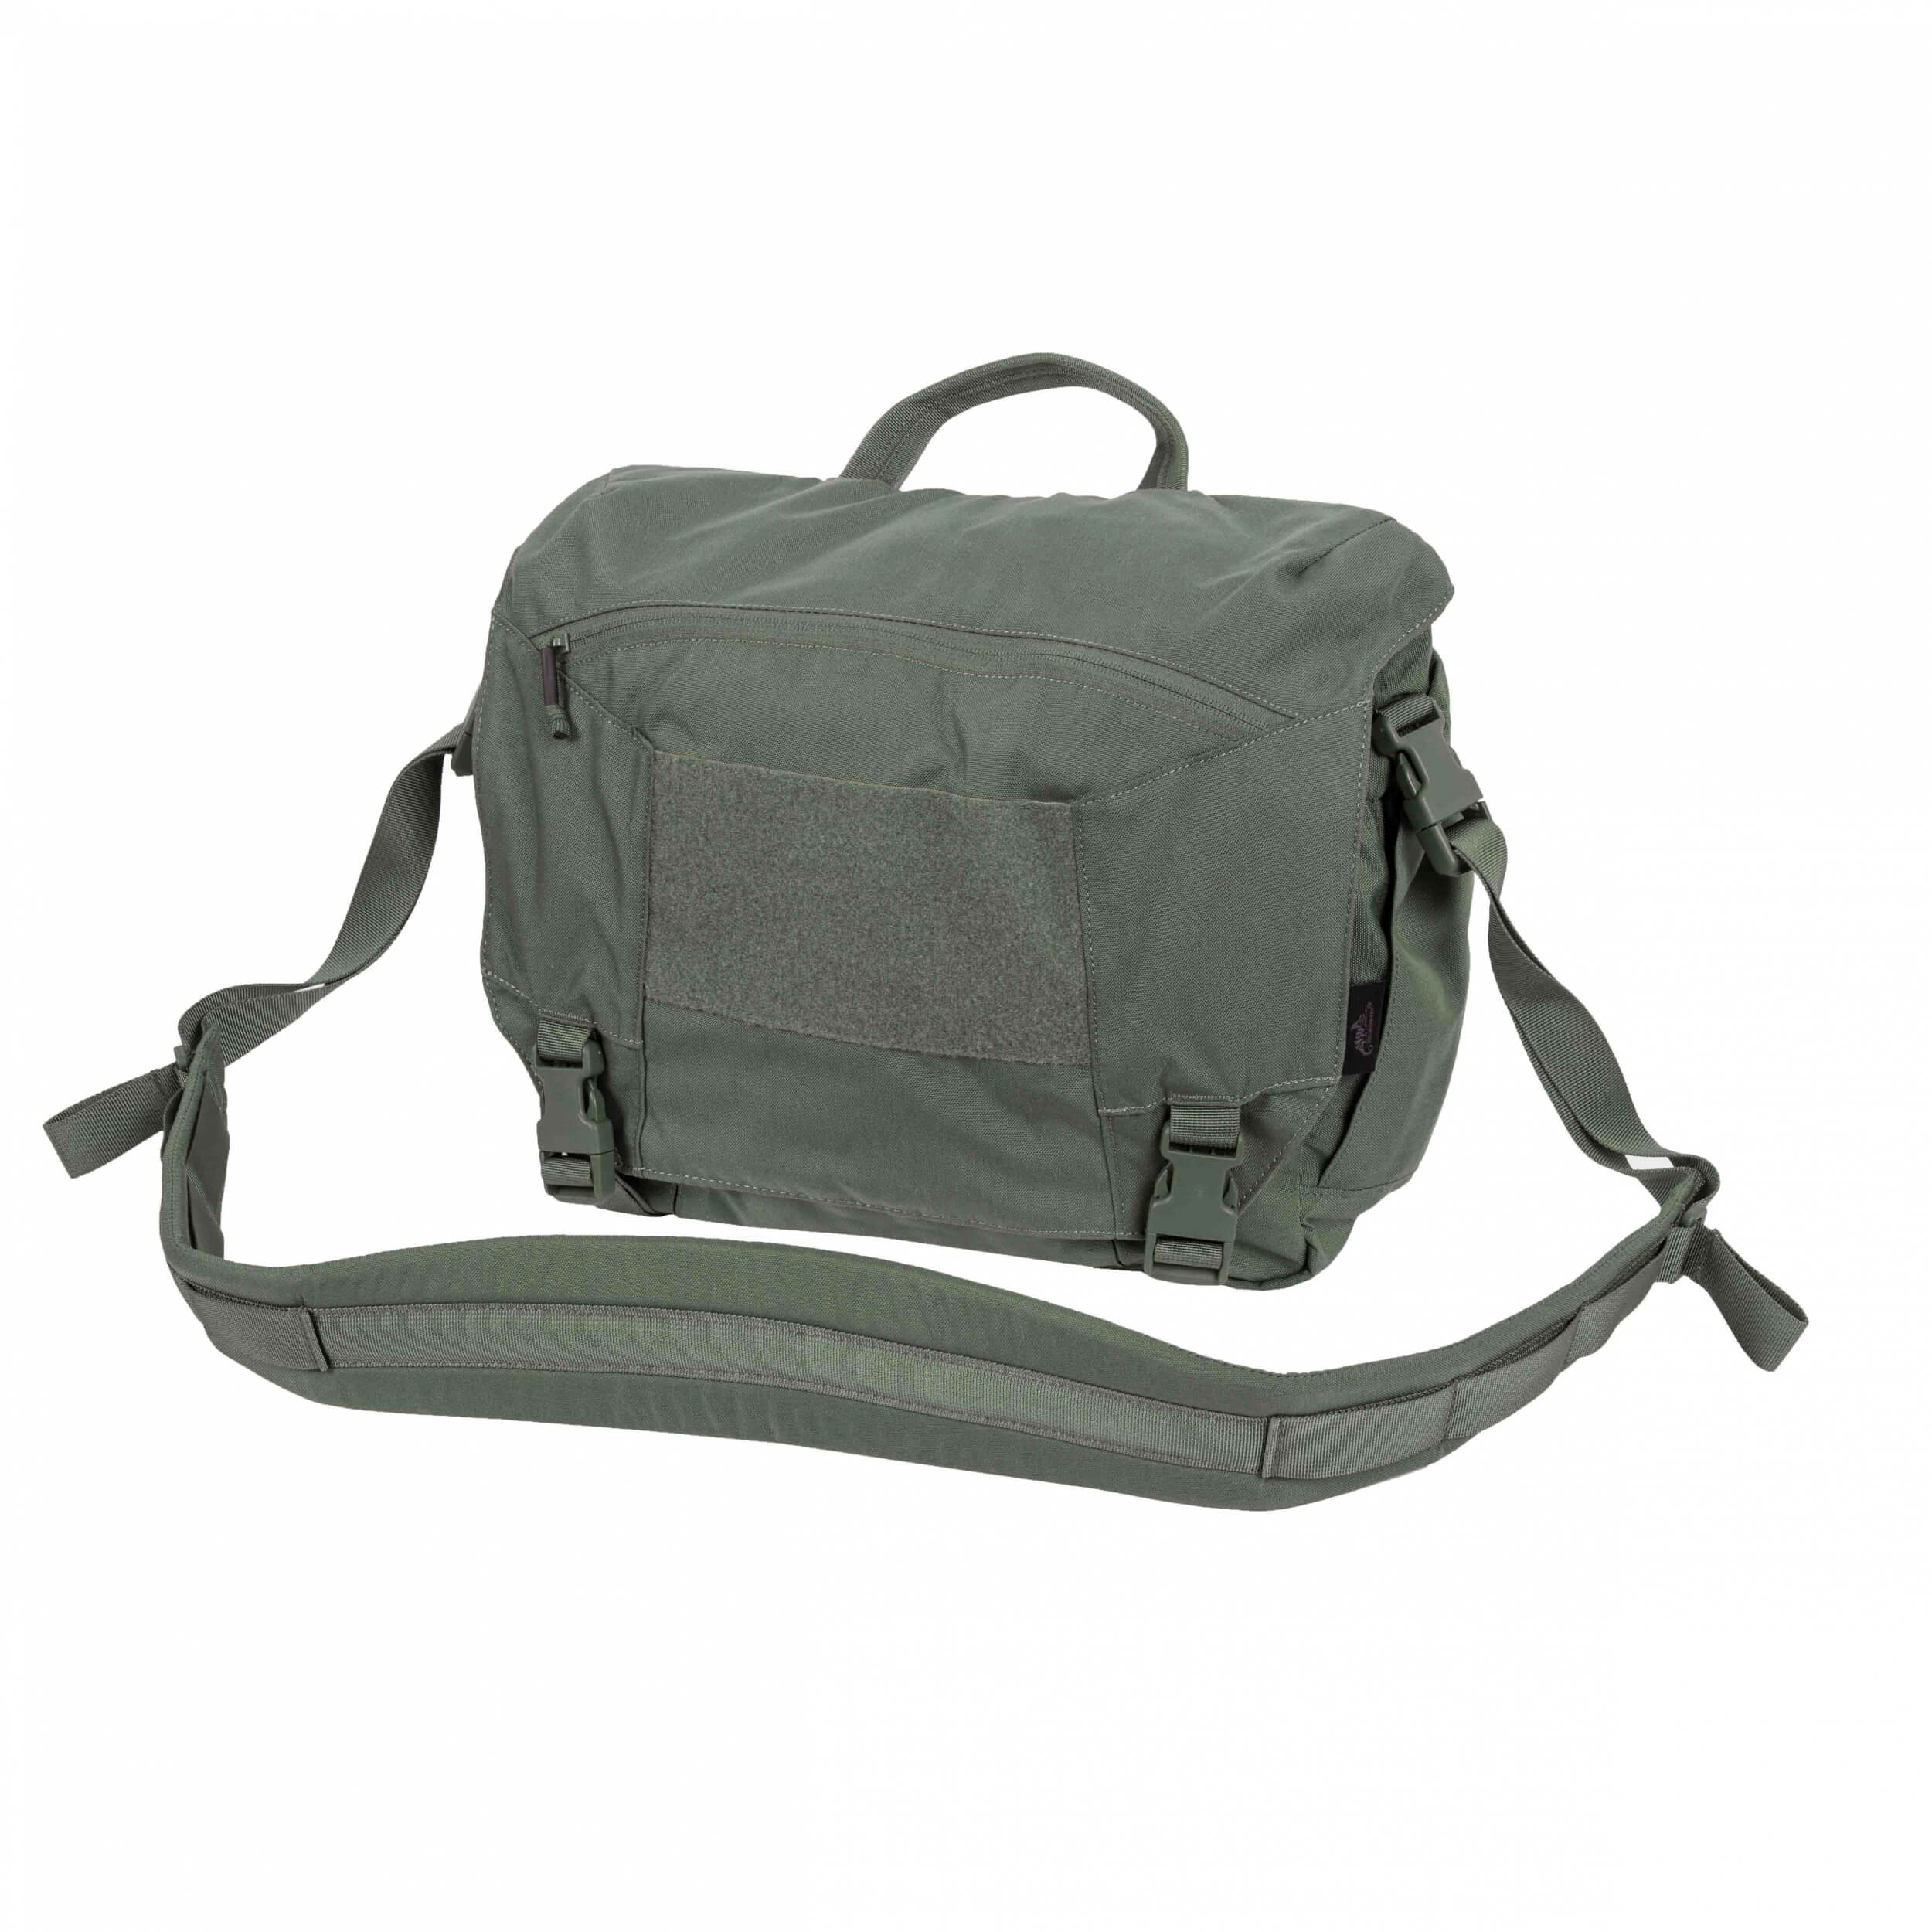 Helikon-Tex Urban COURIER Bag Medium -Cordura - Adaptive Green